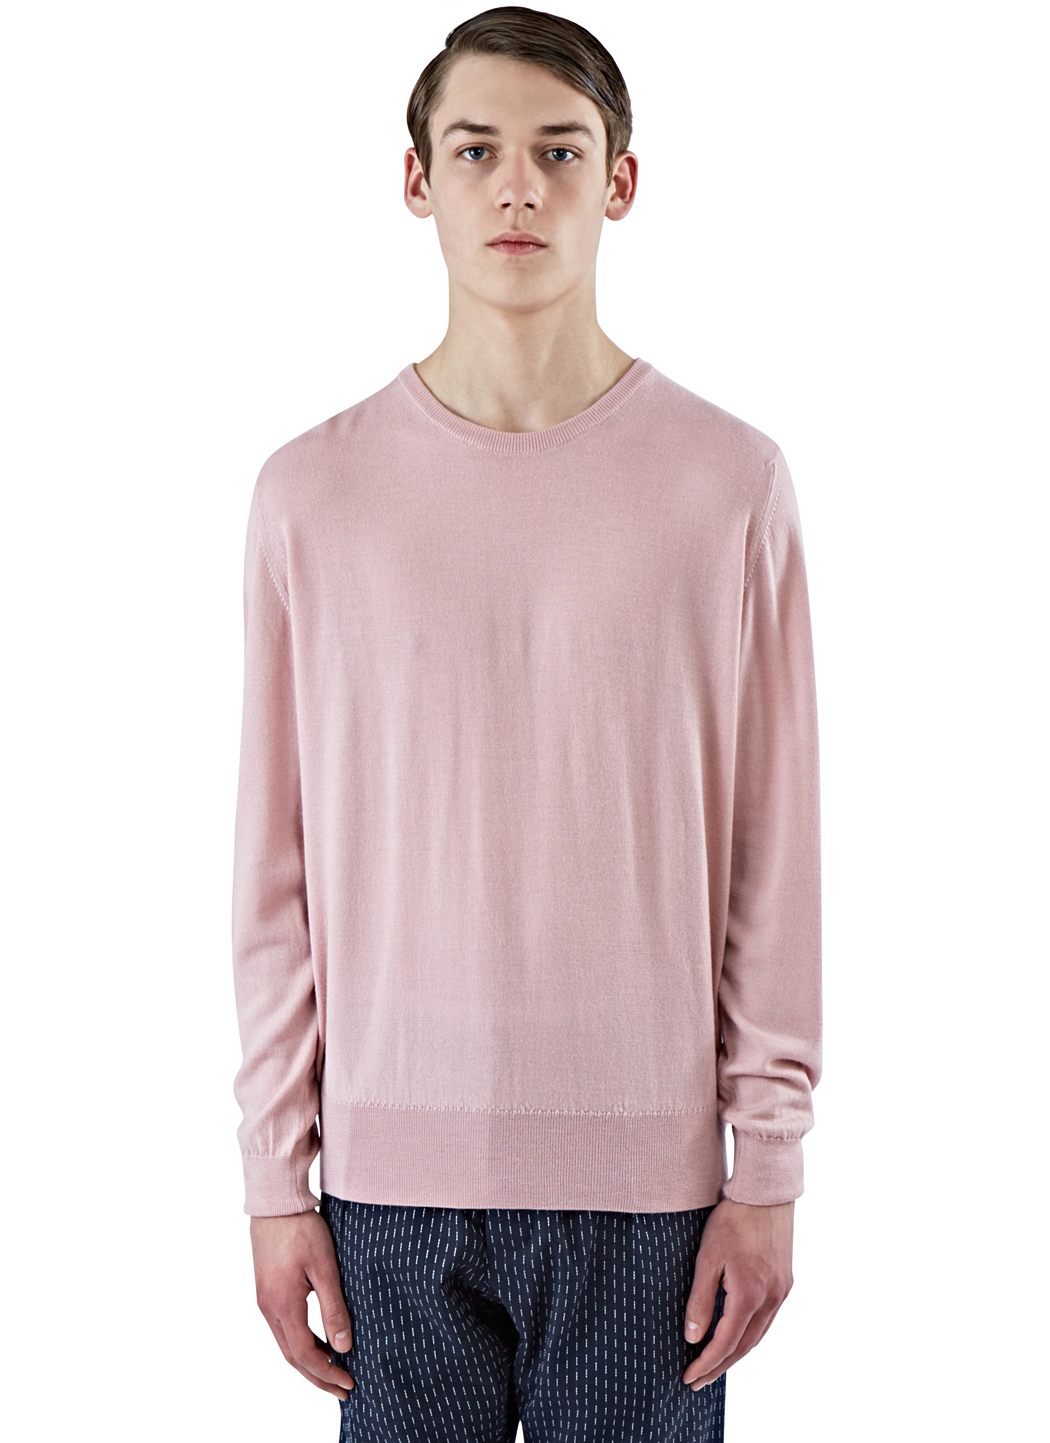 E. tautz Men's Fine Gauge Knit Crew Neck Sweater In Pink in Pink ...